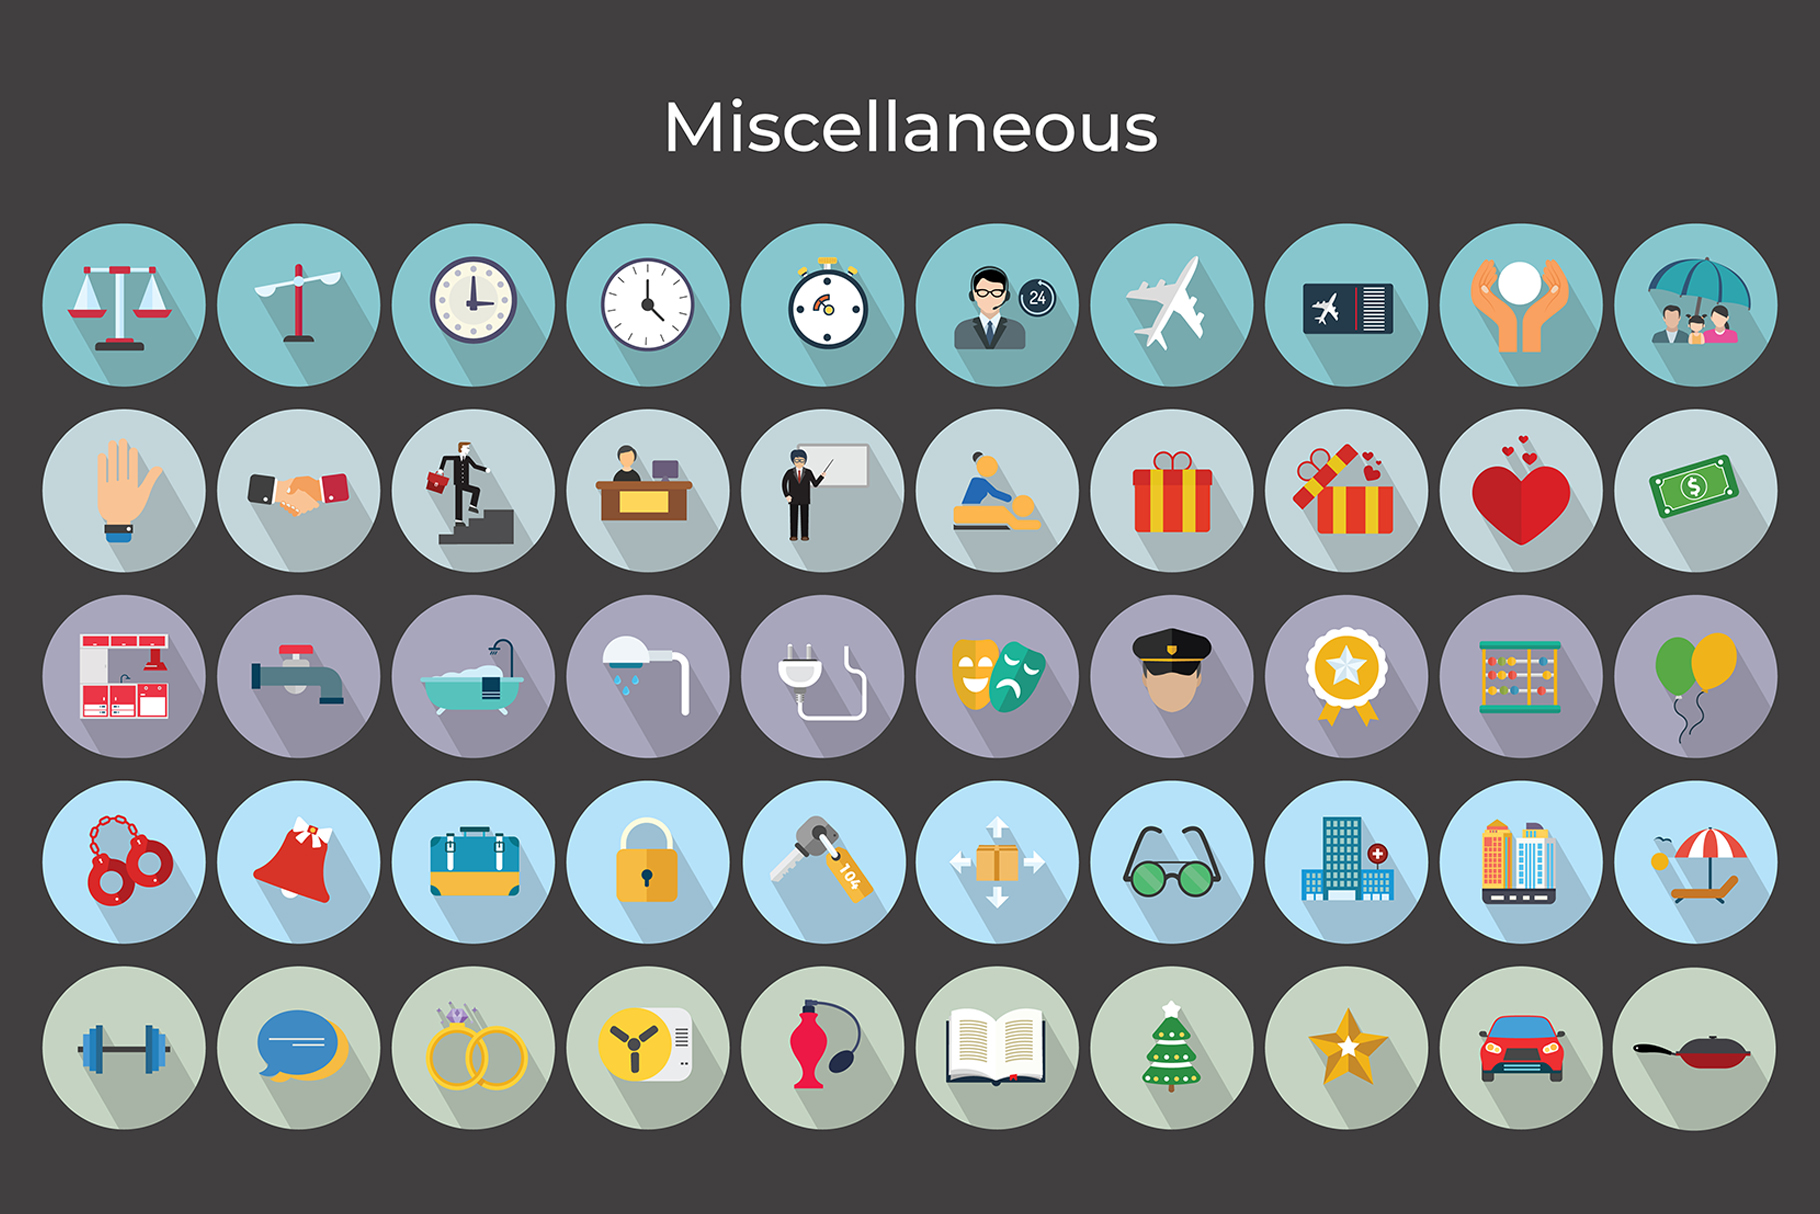 Miscellaneous Vector Icons V2 example image 5